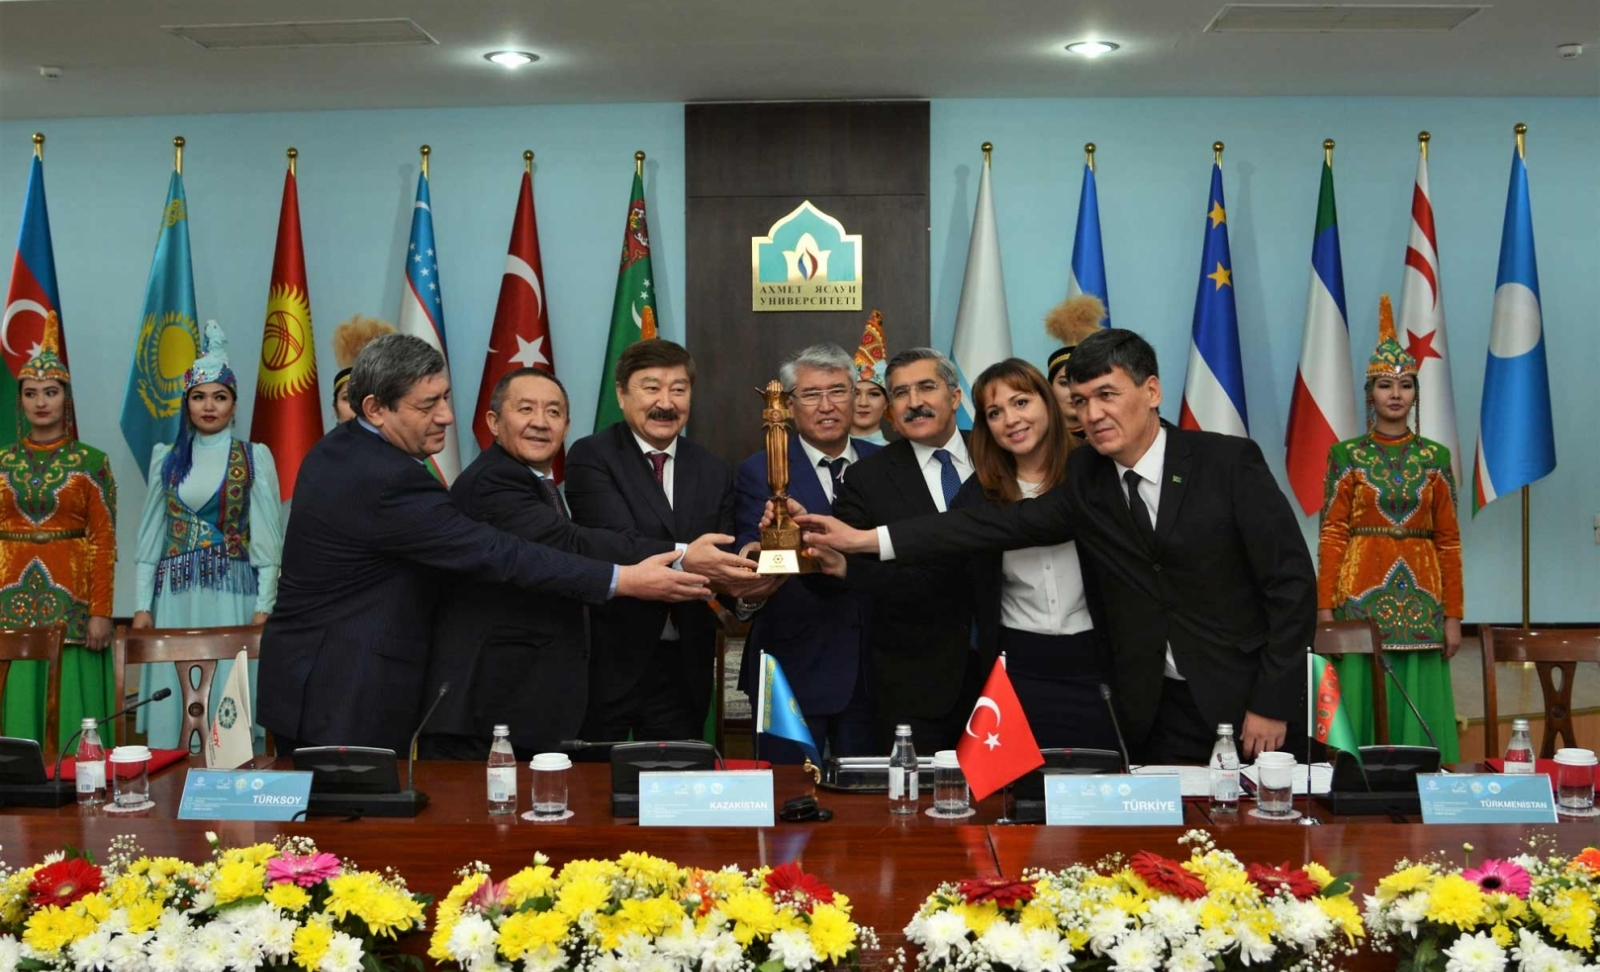 Ministers of Culture Came Together in Turkistan